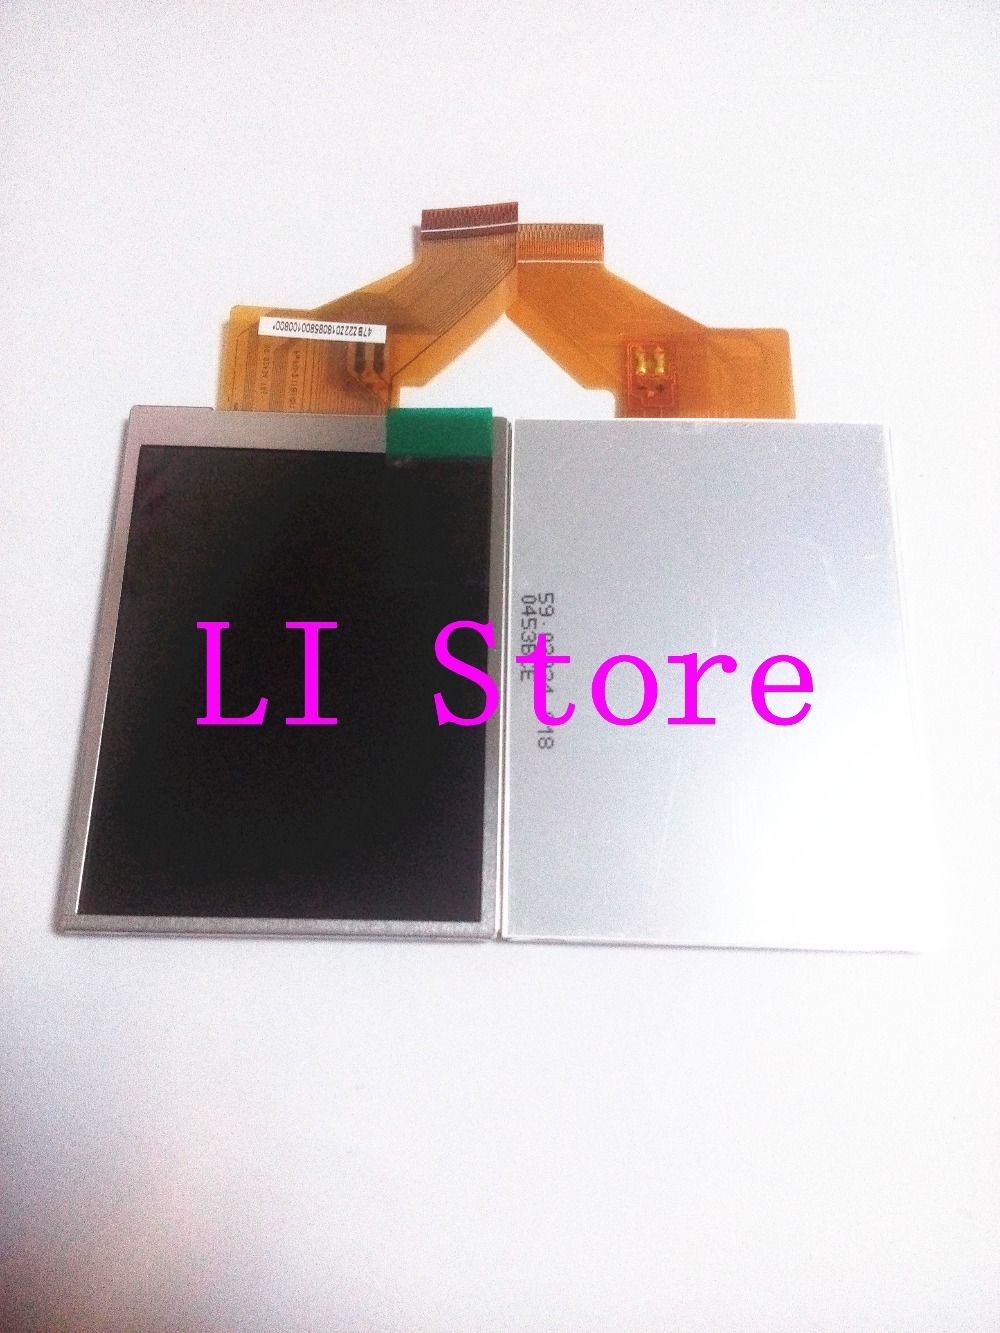 New LCD Display Screen For Sony CyberShot DSC S1900 DSC S2000 S1900 S2000 Camera Replacement with